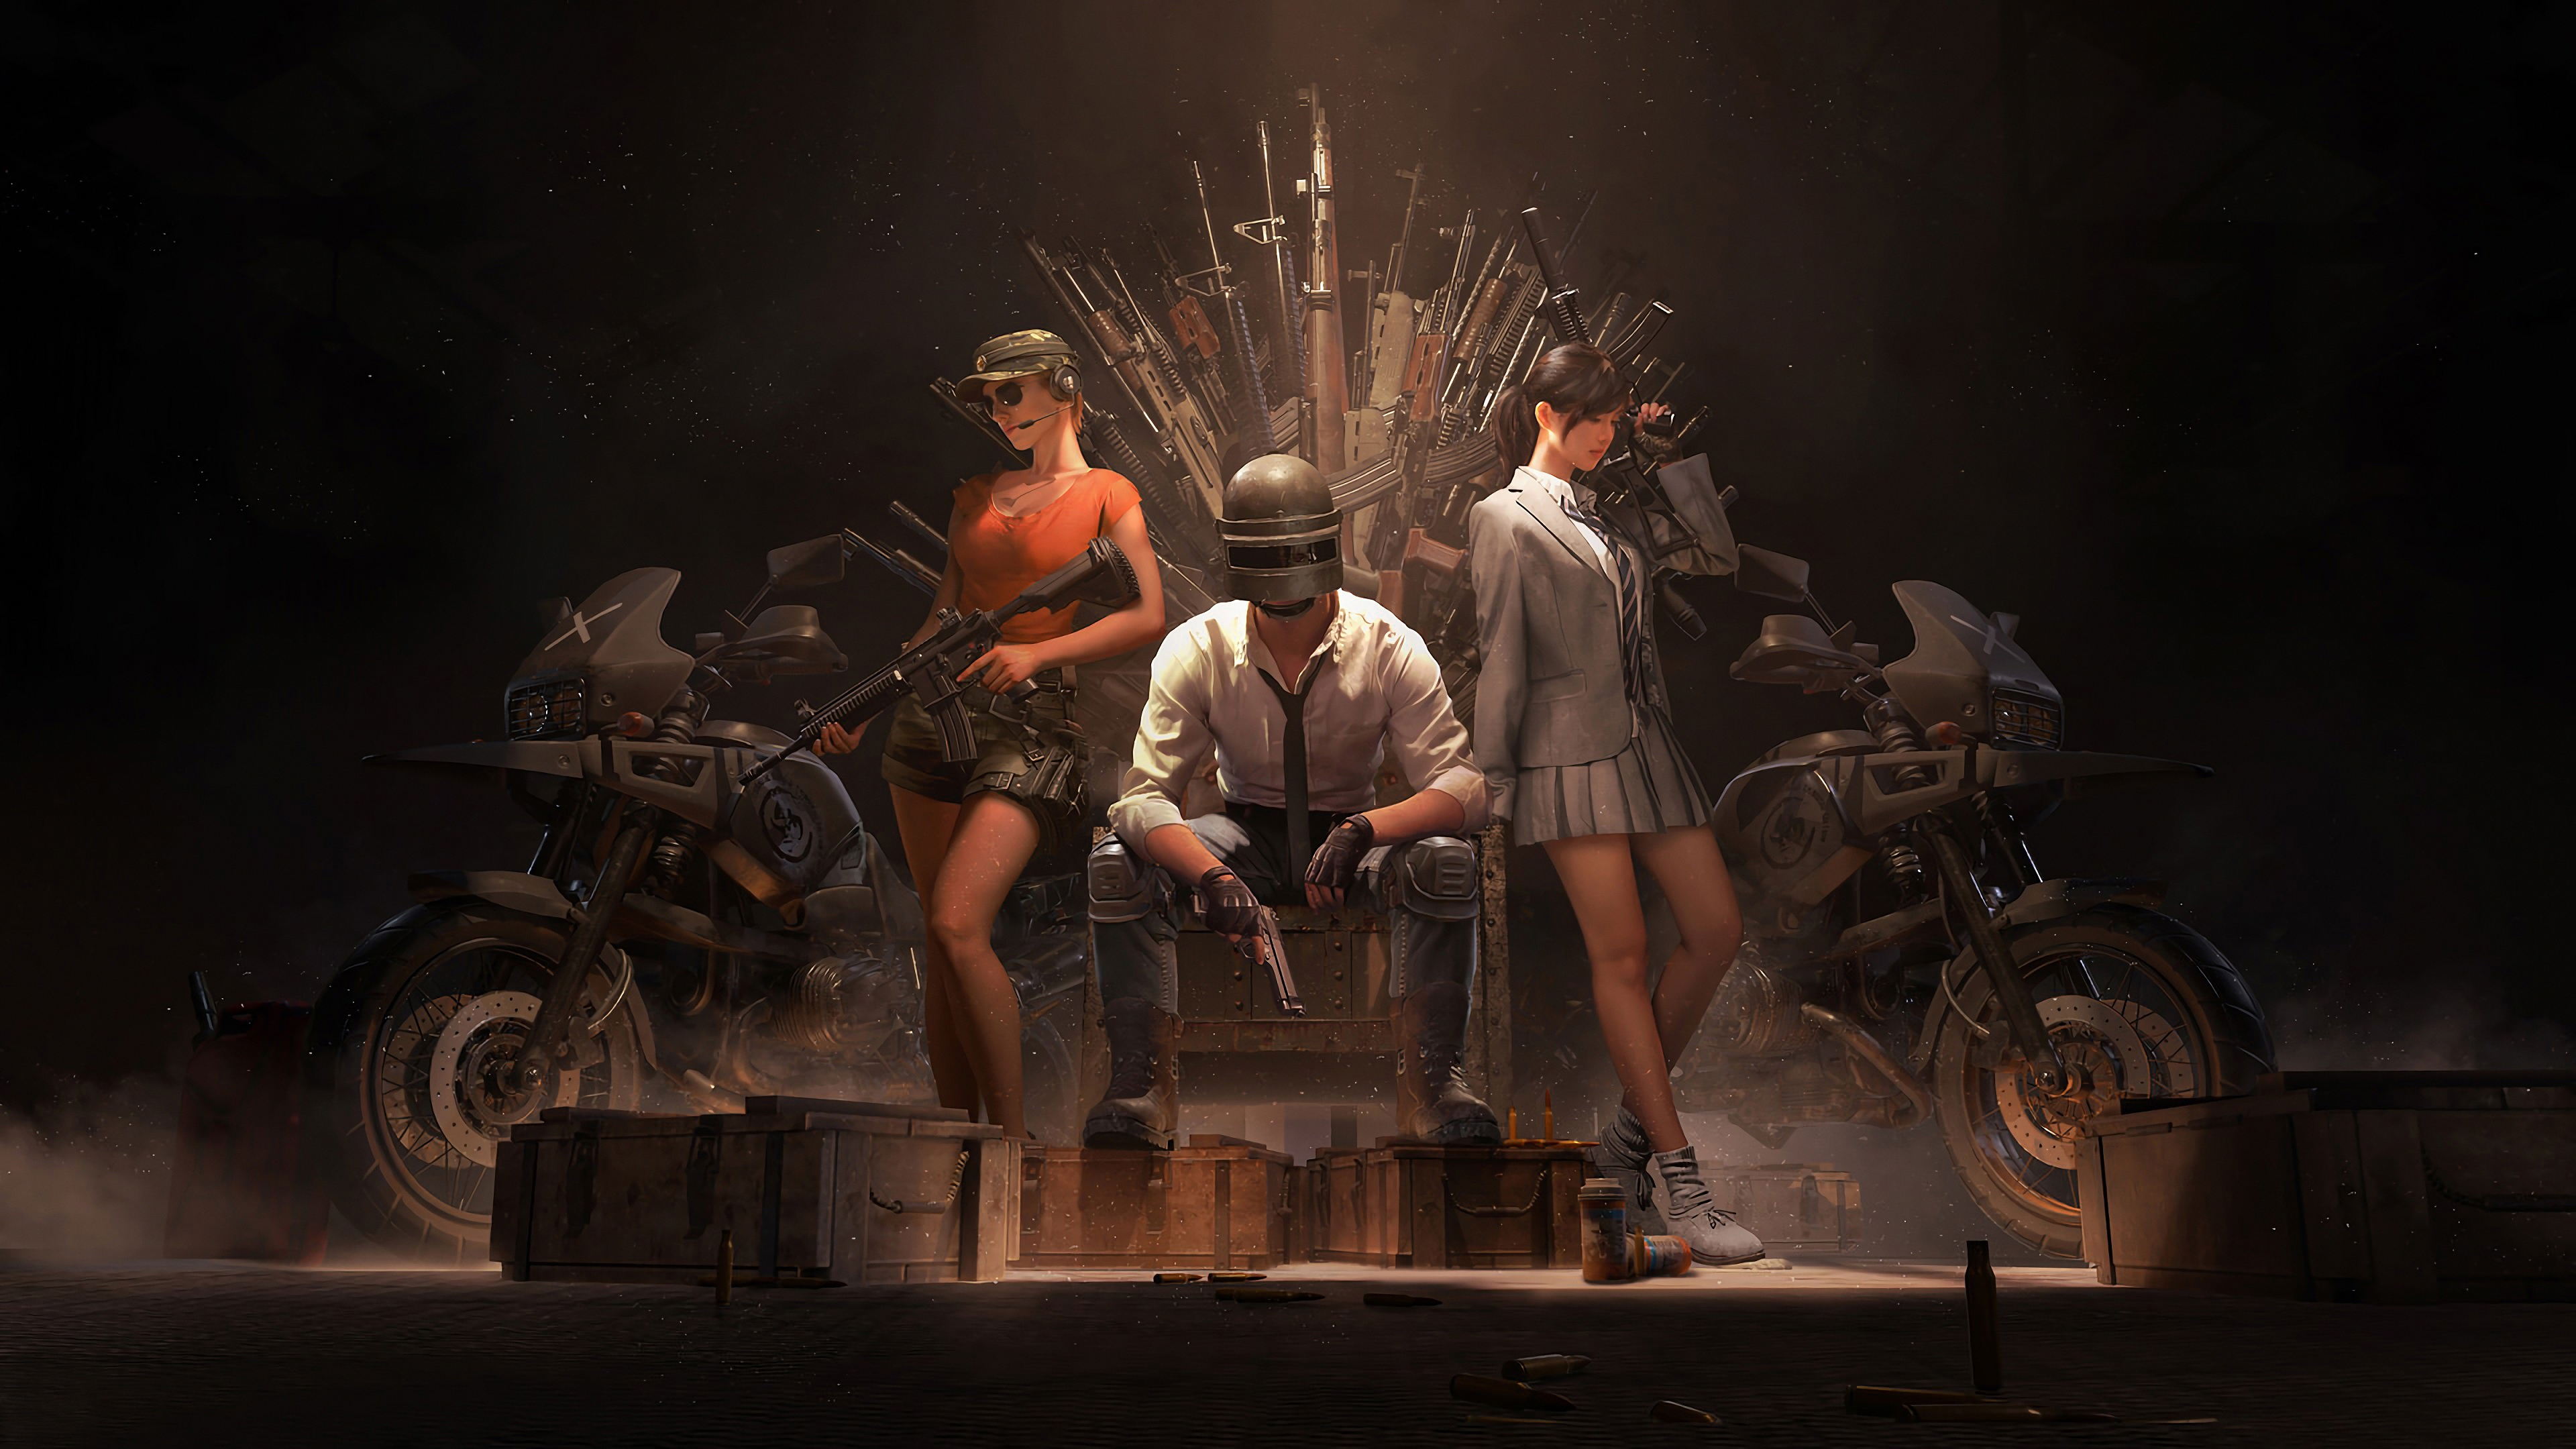 Pubg Wallpaper Hd Pic: Pubg Helmet Guy With Girls And Guns 4k, HD Games, 4k